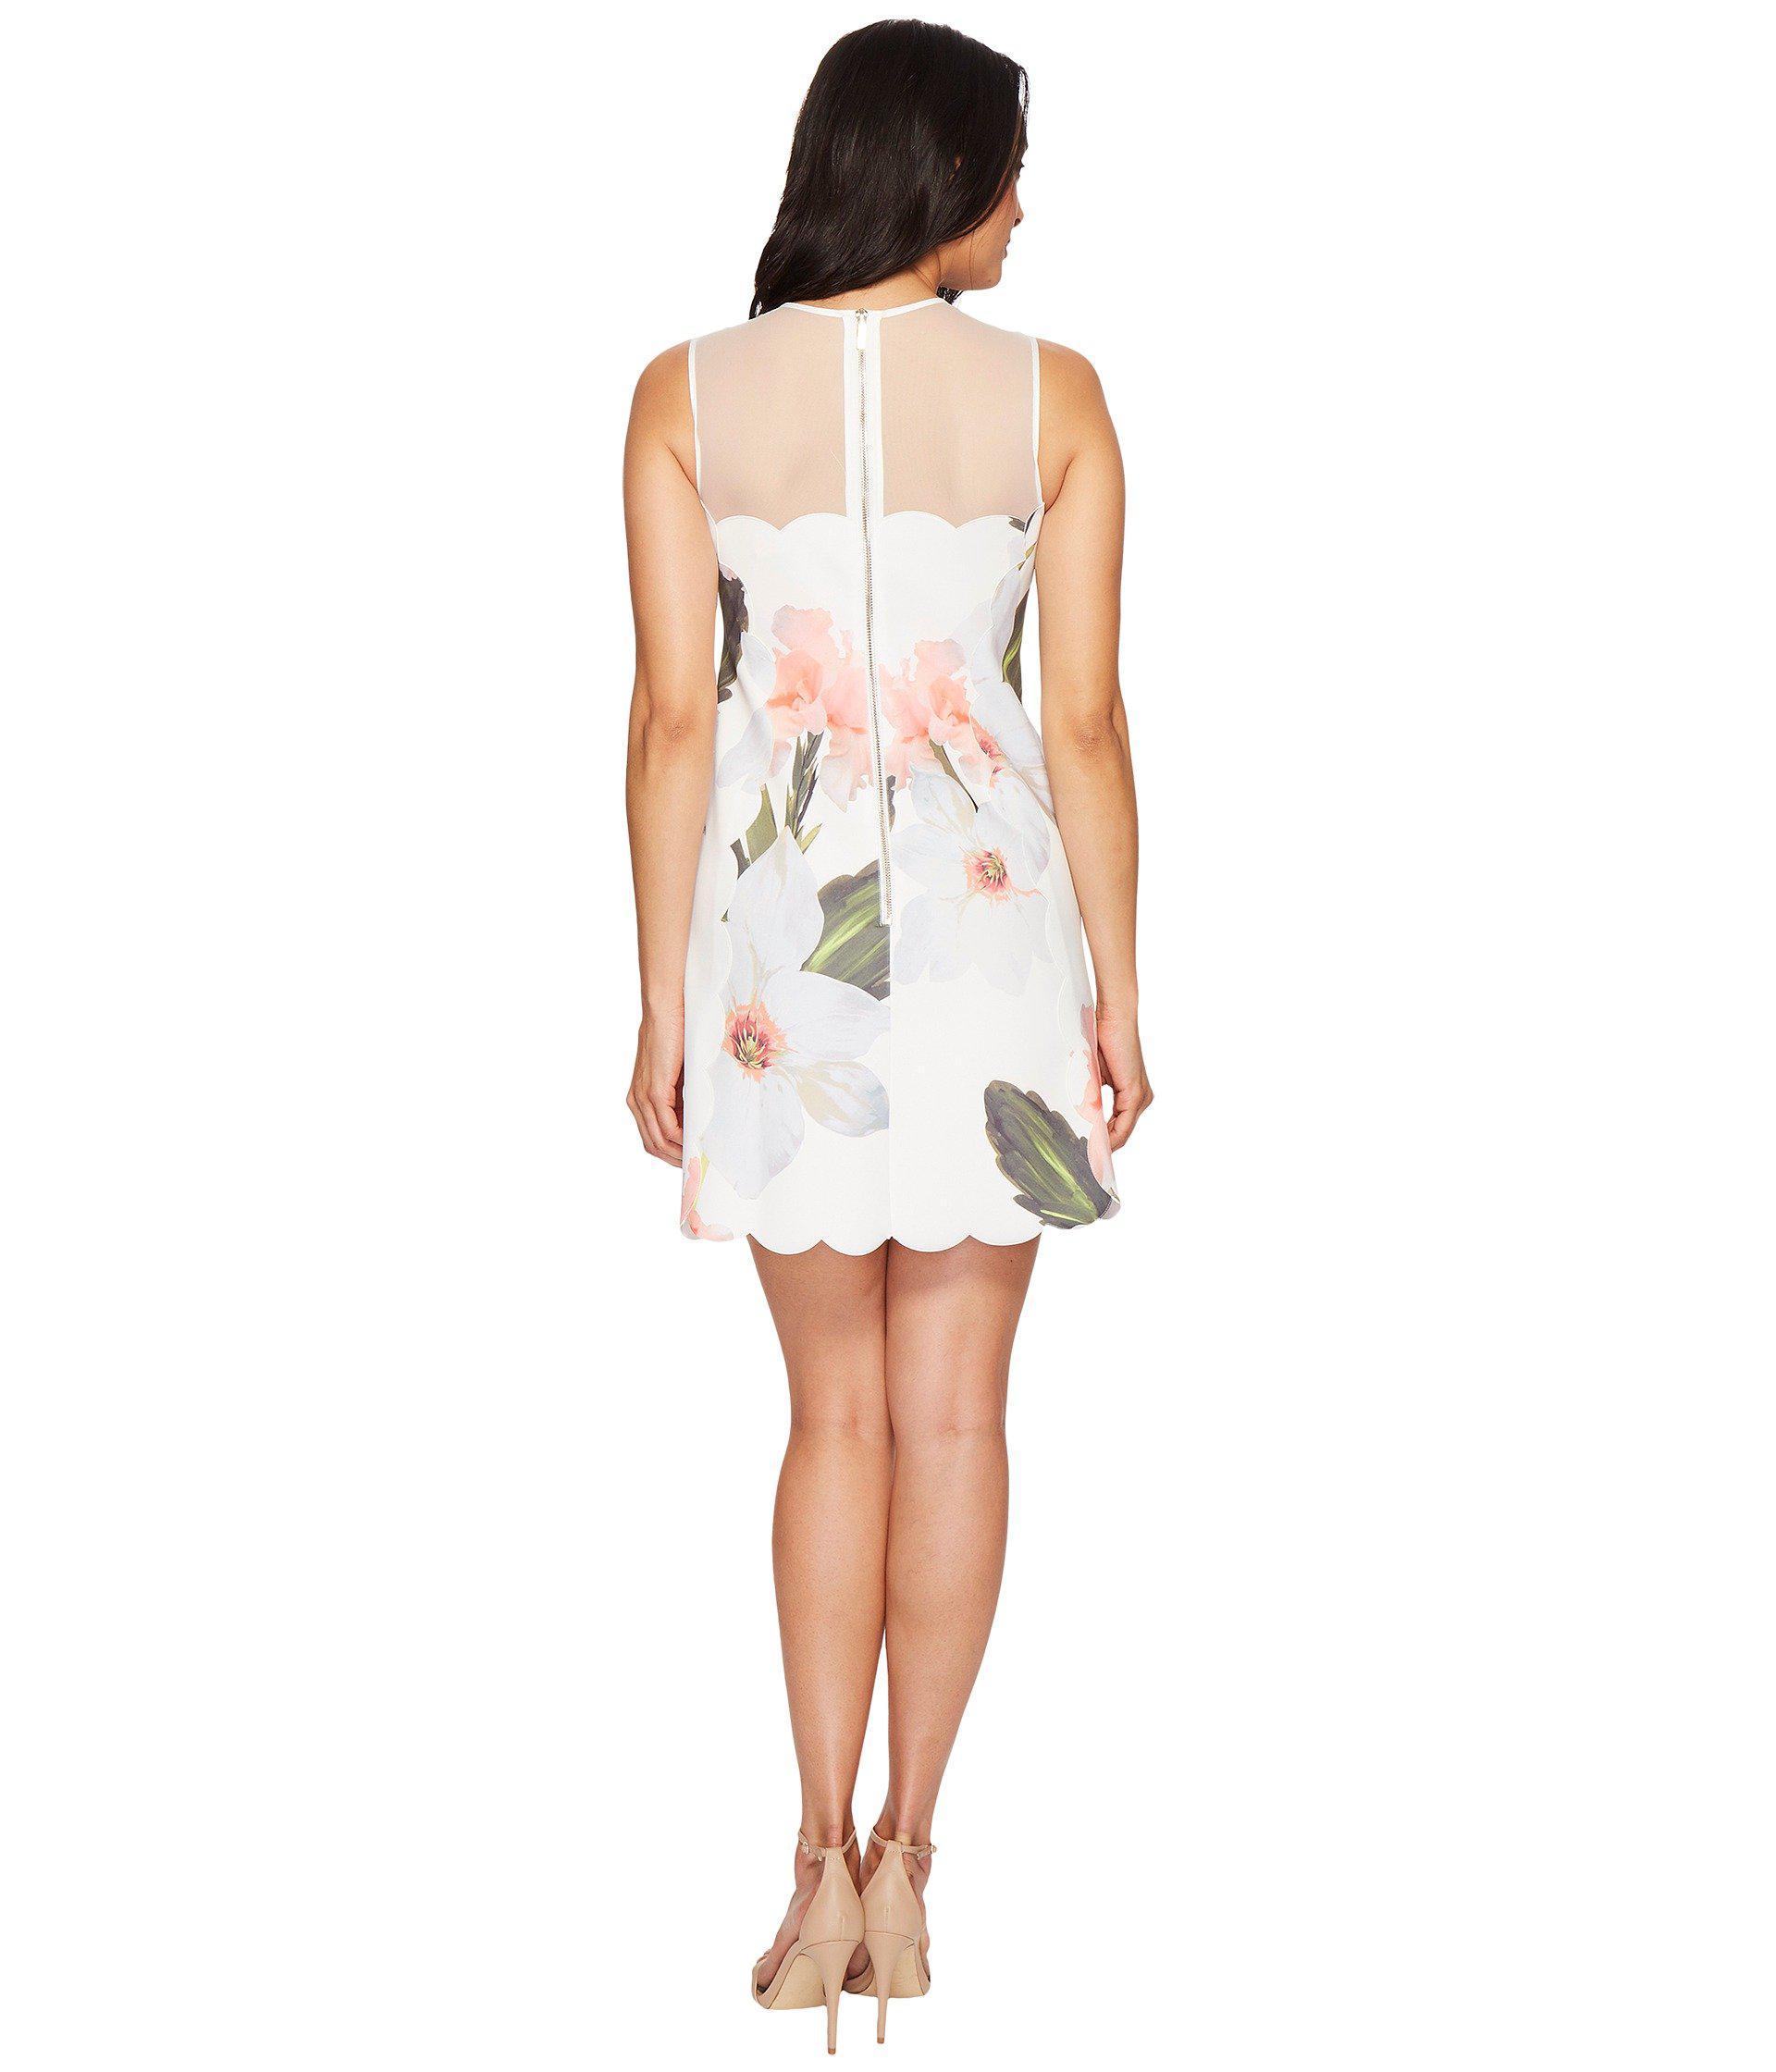 b2c23f7a47b Ted Baker Caprila Chatsworth Bloom Scallop Tunic in White - Lyst